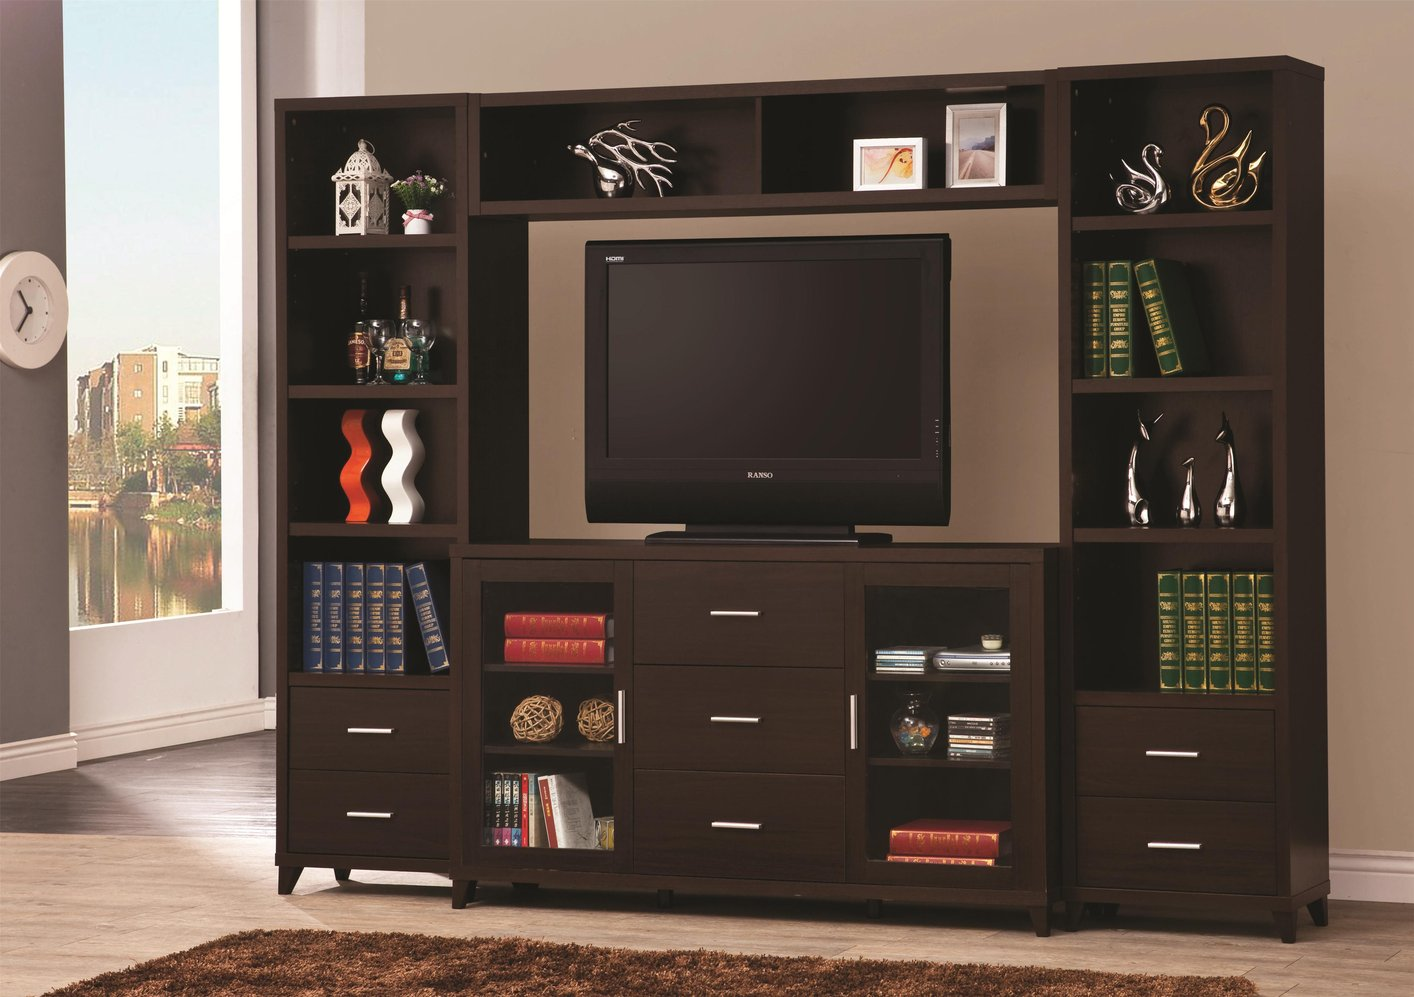 Top Coaster Brown Wood Tv Stand Stealasofa Furniture Outlet With Wood Tv  Stand.